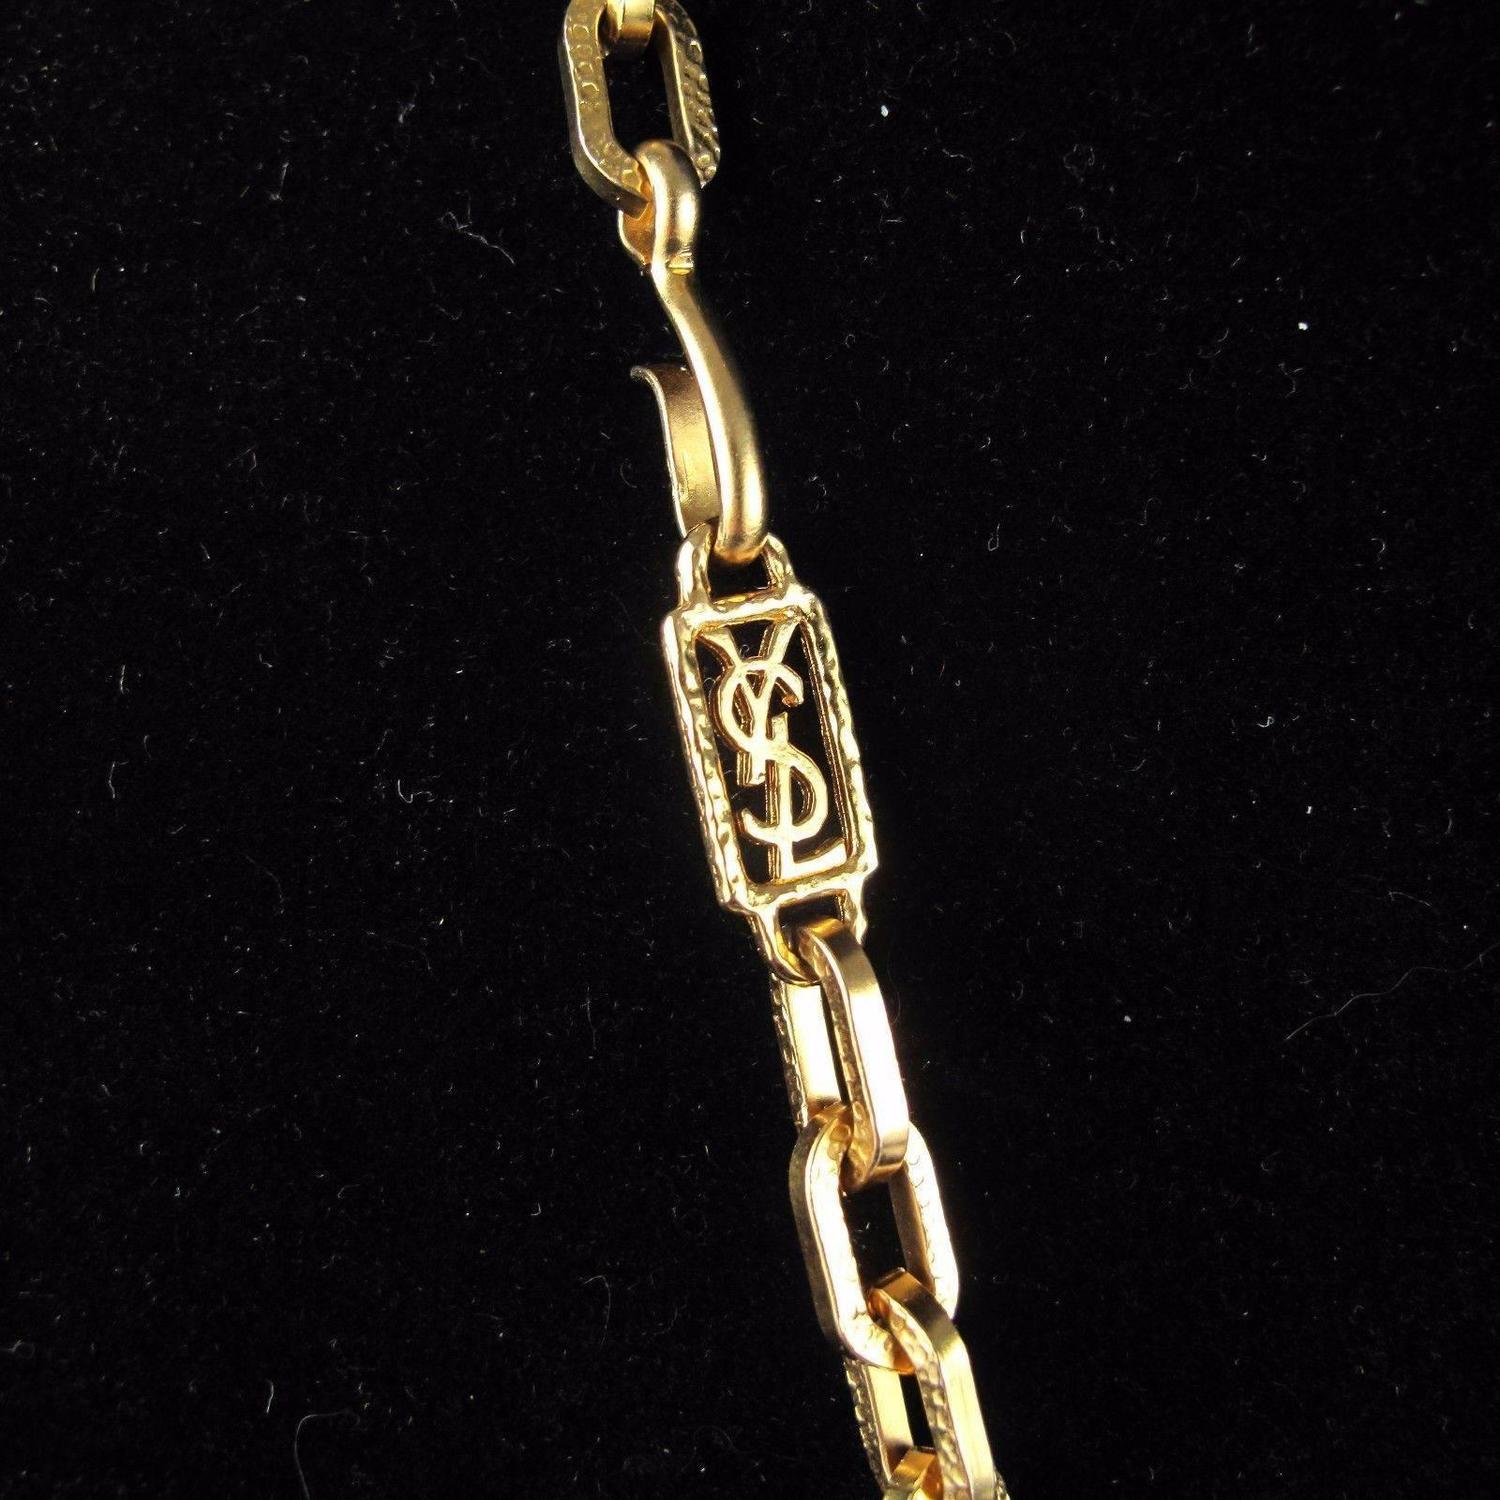 Ysl Logo Gold Vintage Necklace 34 Quot Long Box Chain Yves